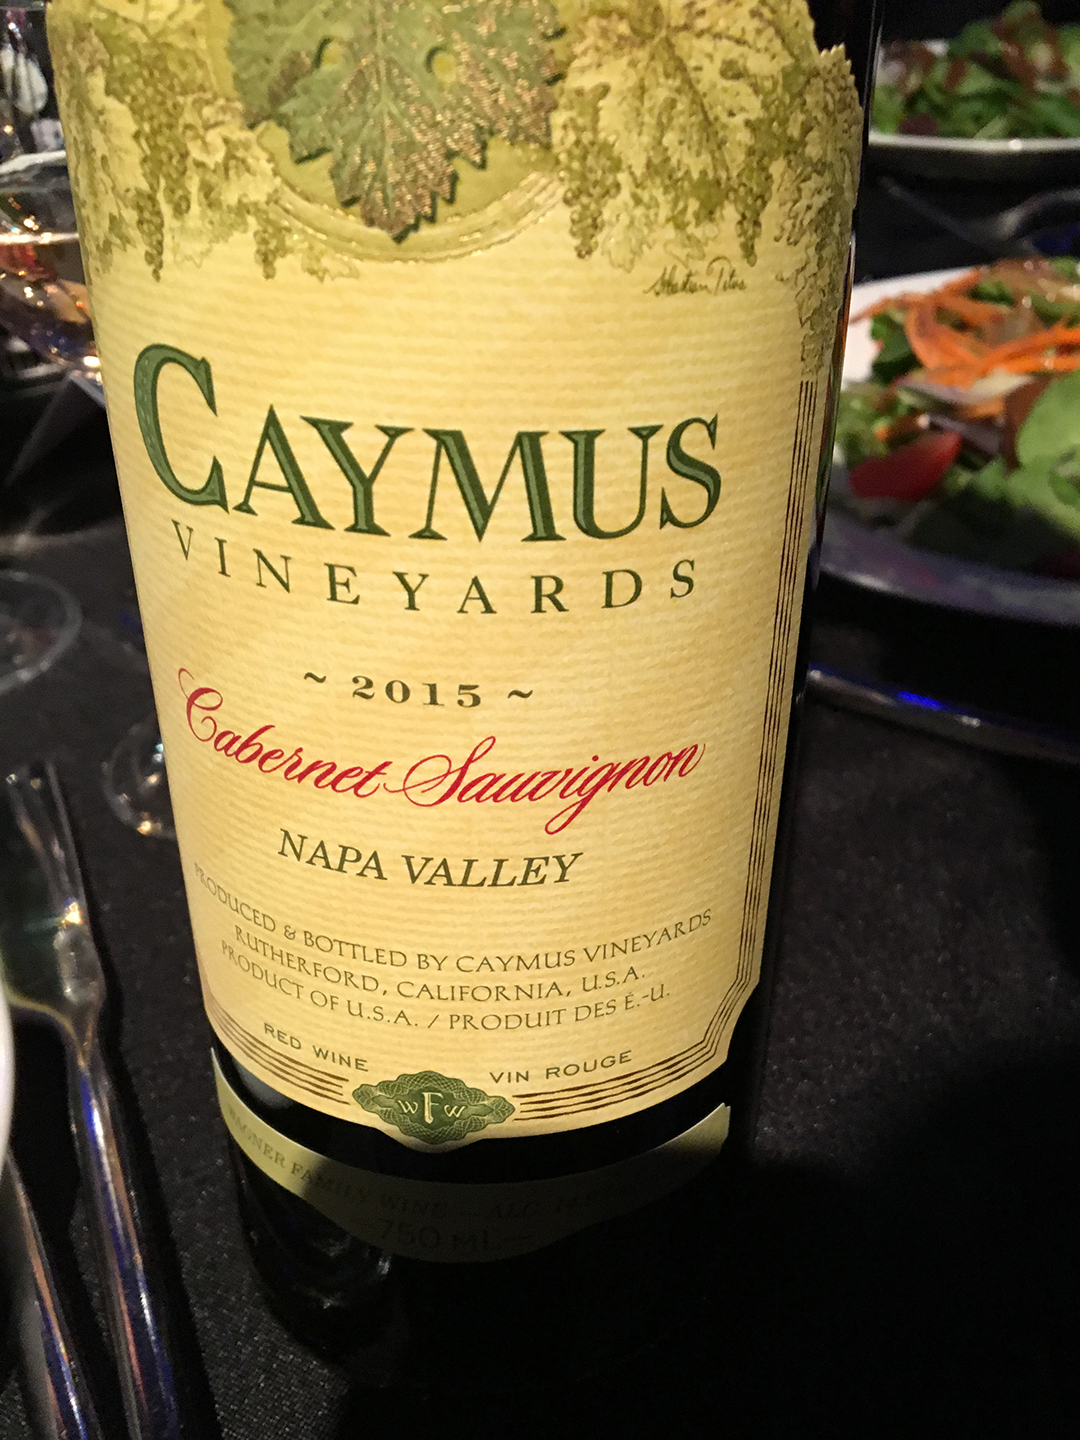 Caymus Vineyards Cabernet Sauvignon 2015, Napa Valley